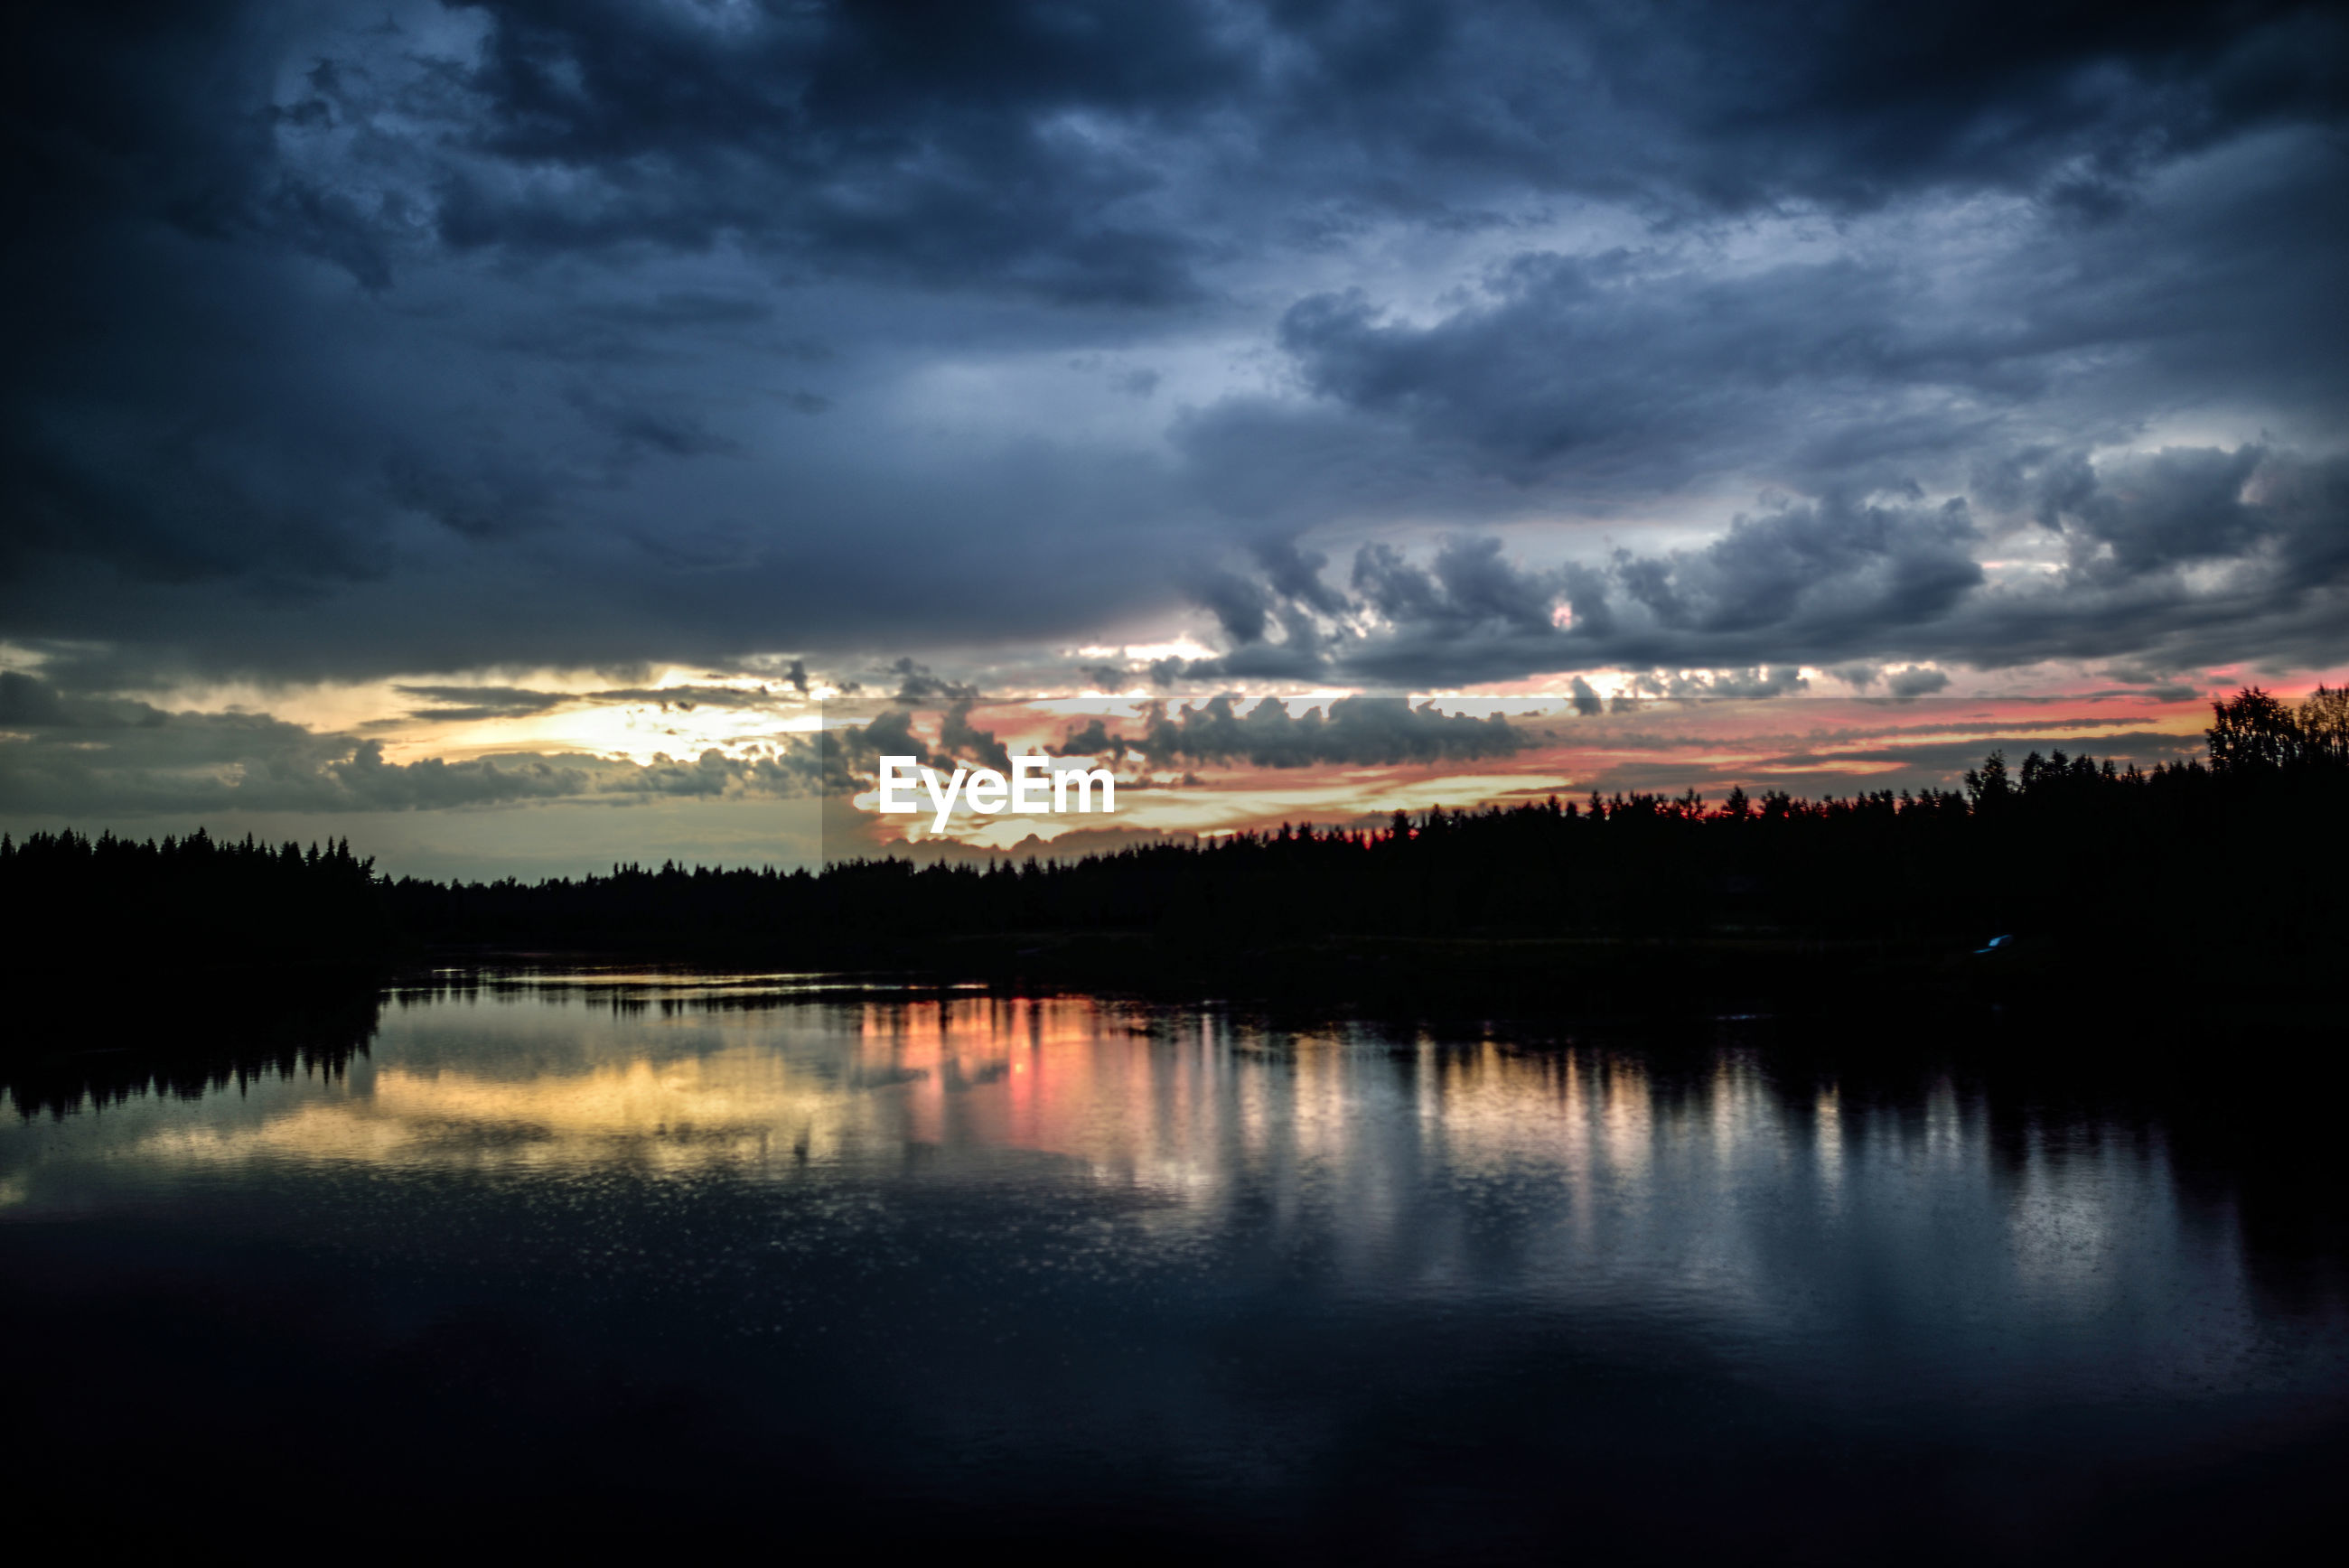 SCENIC VIEW OF LAKE BY SILHOUETTE TREES AGAINST SKY DURING SUNSET